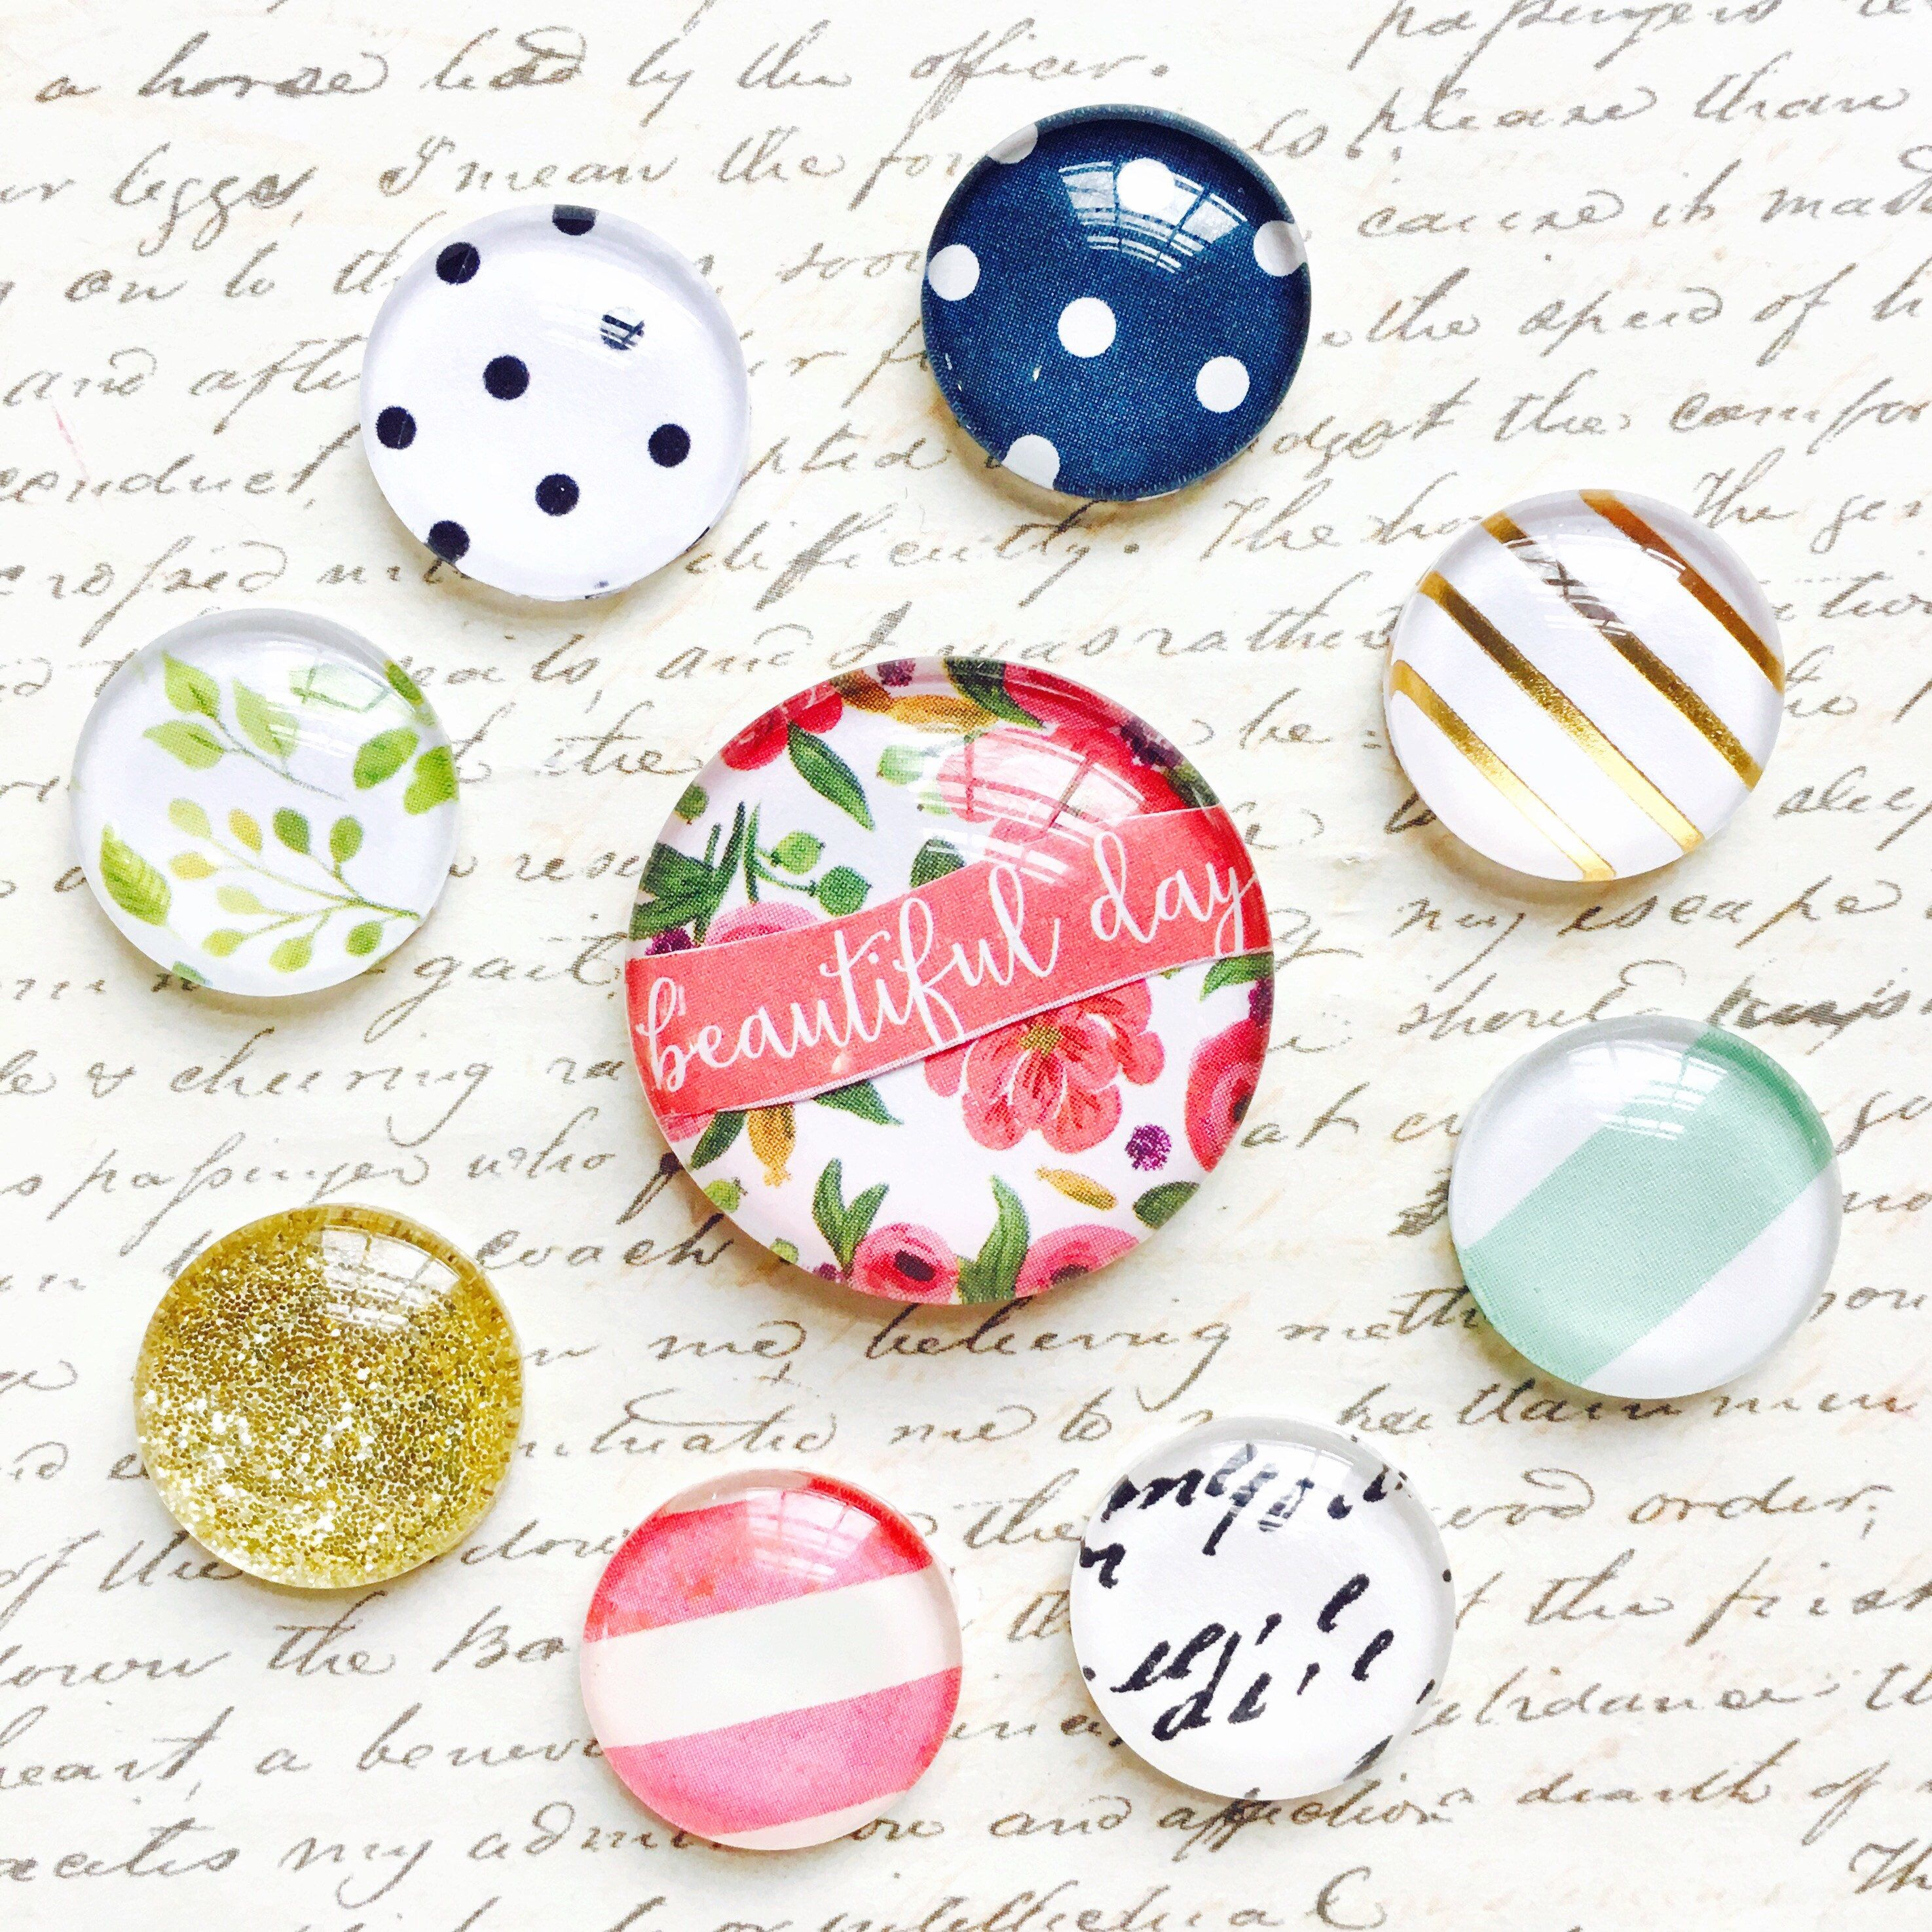 decorative office supplies. Glass Magnets - Deluxe Magnet Set Office Supplies Decorative L